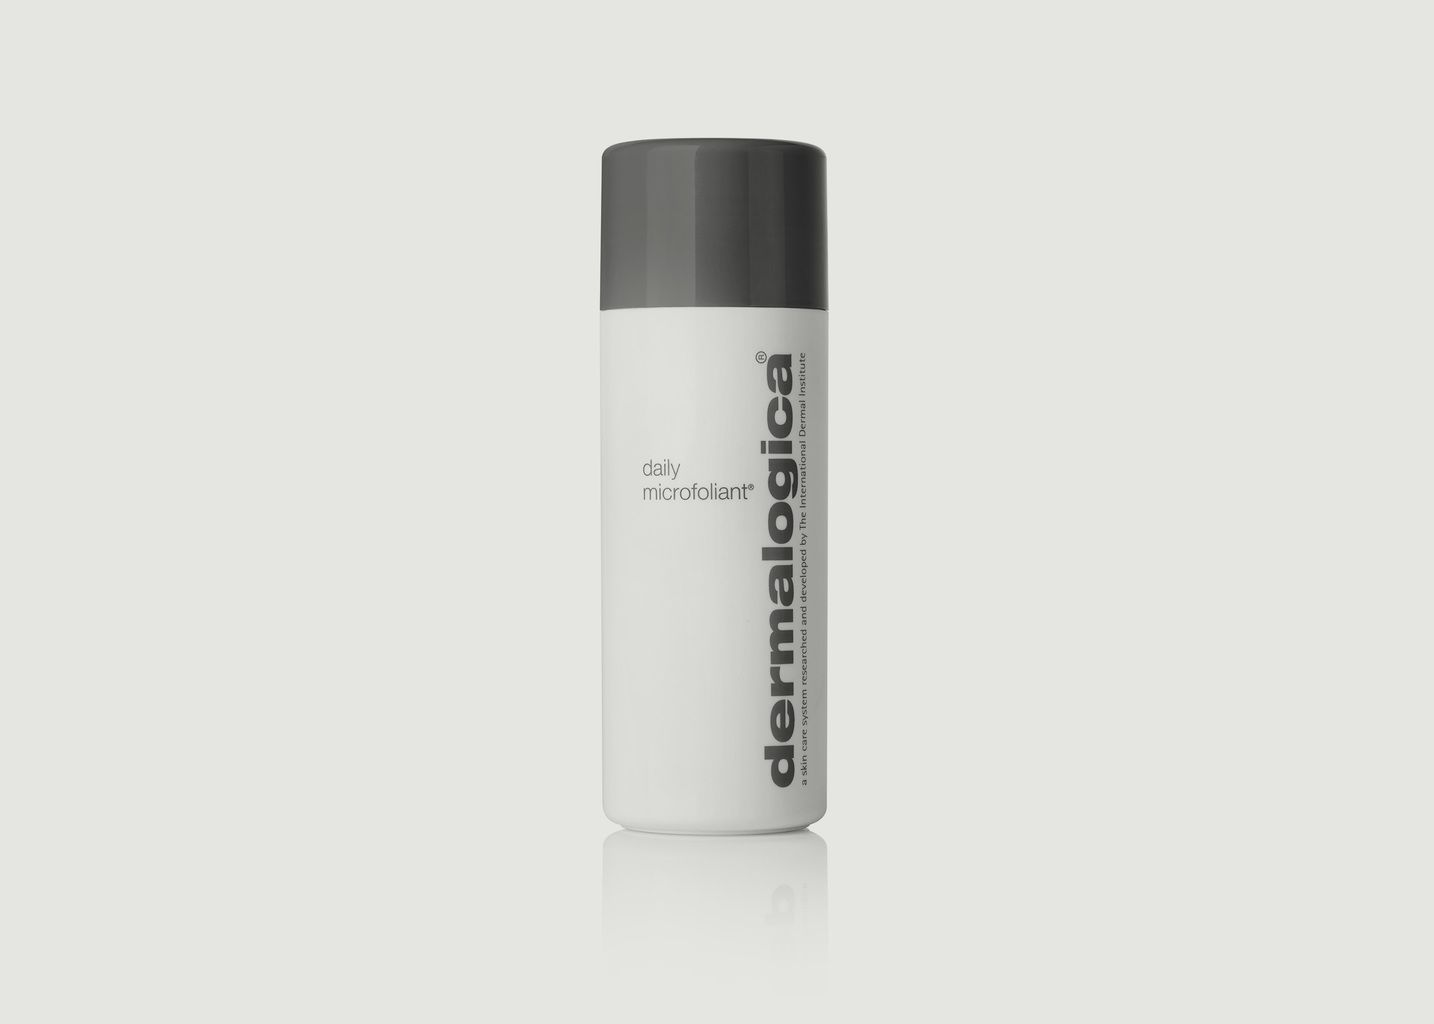 Daily microfoliant 75G - Dermalogica